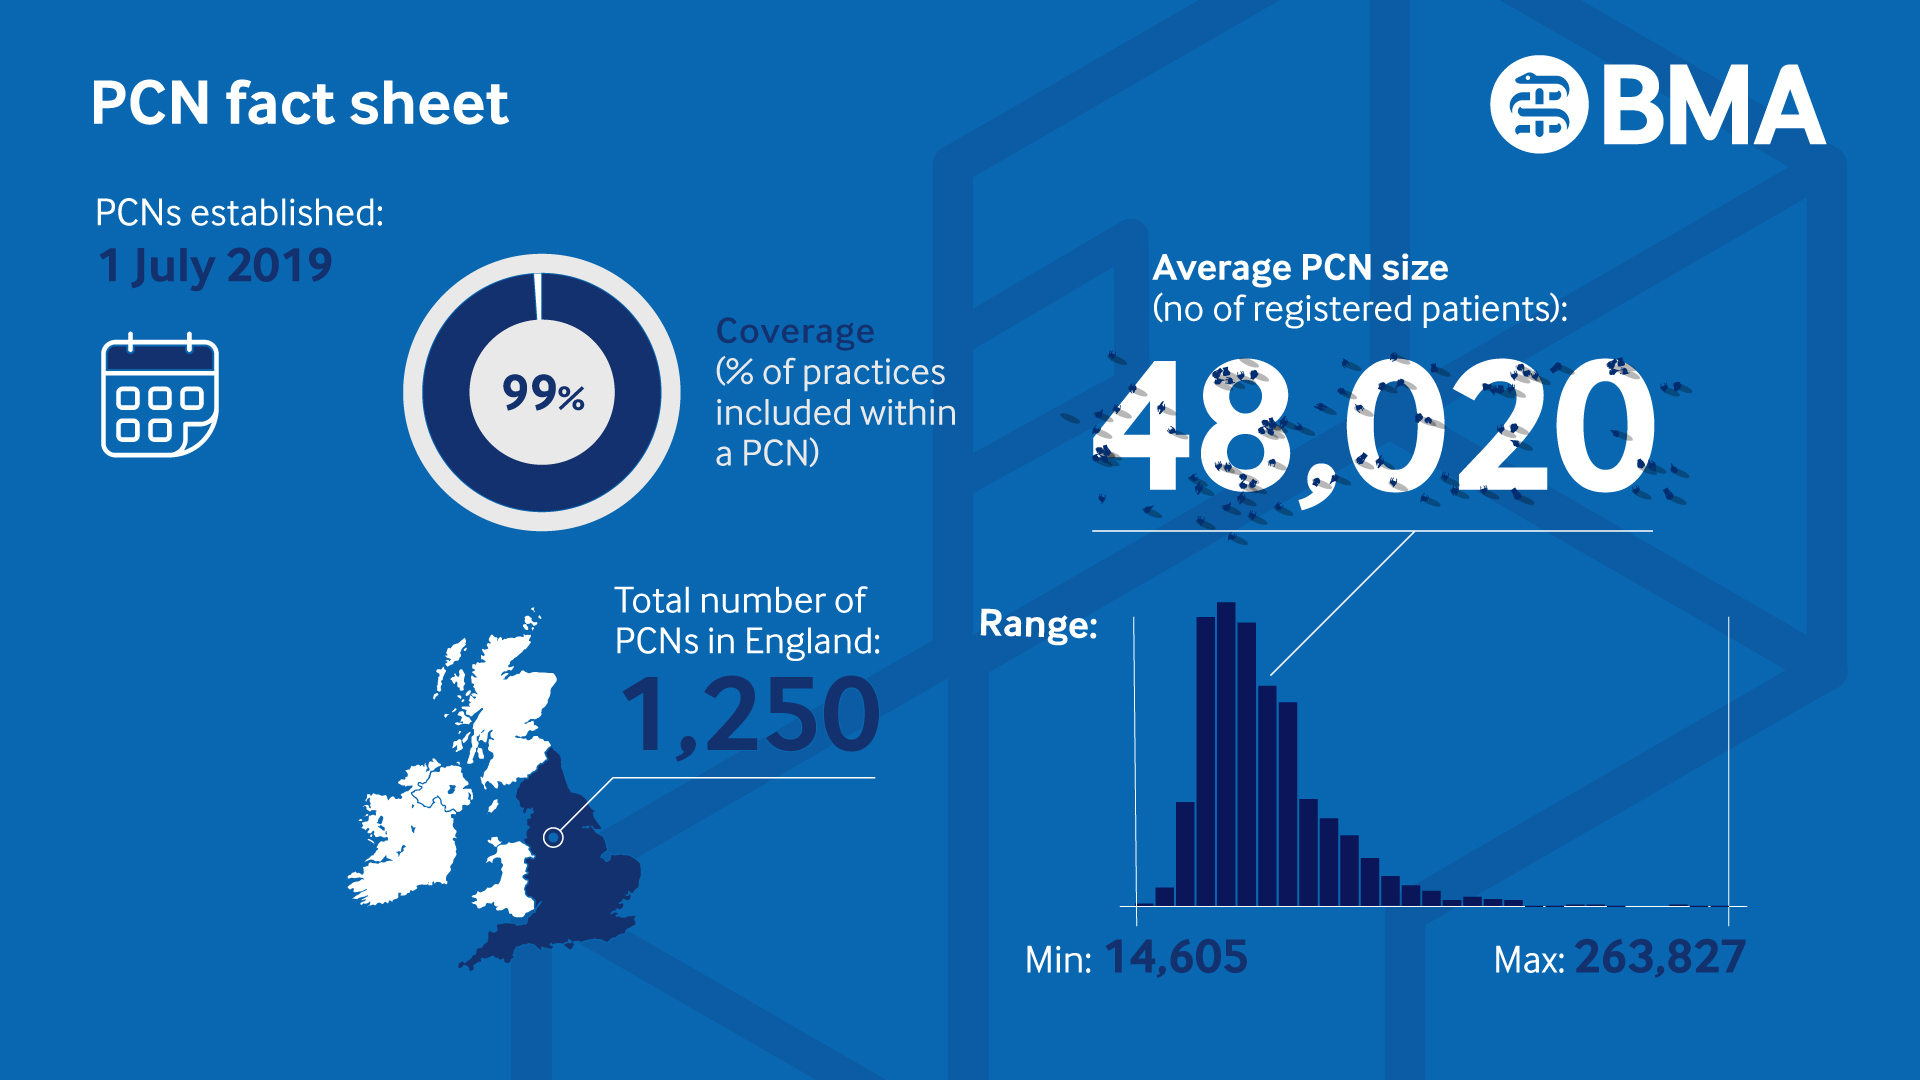 PCN factsheet - 99% of practices included in PCN, 1250 PCNs in England, 48020 average patients: min 14605 and max 263827